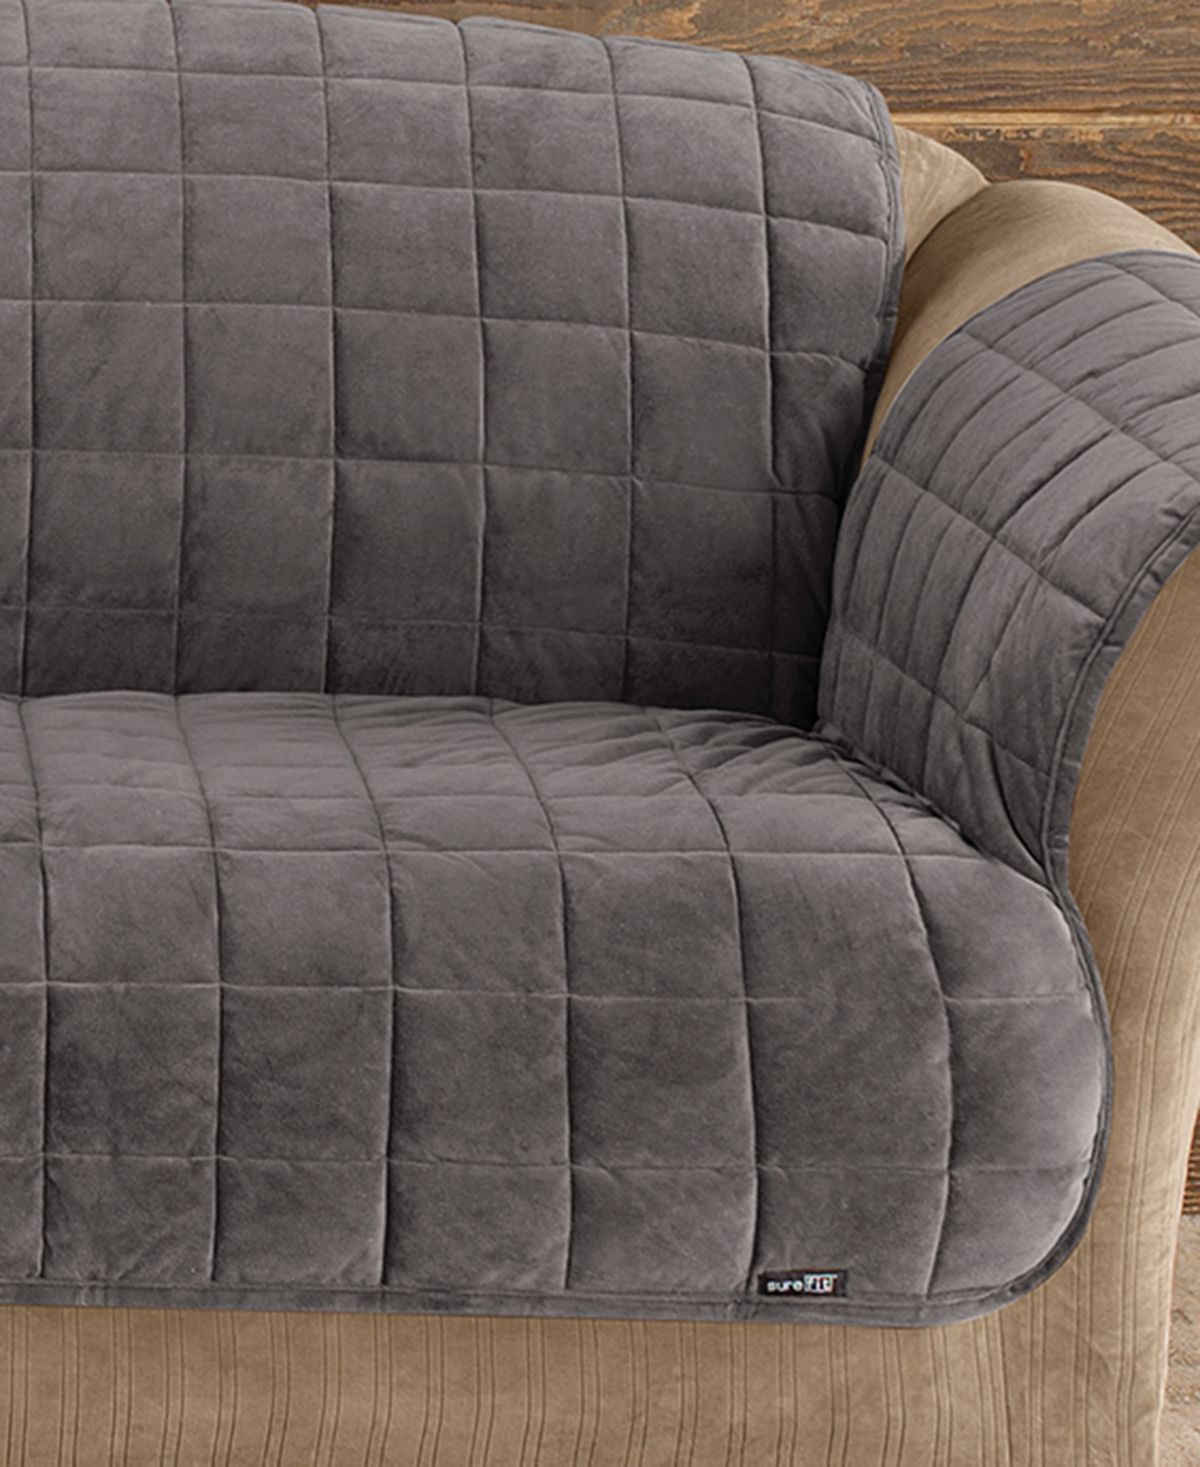 Sure Fit Velvet Deluxe Pet Loveseat Slipcover With Sanitize Odor Release Reviews Slipcovers Home Decor Macy S Loveseat Slipcovers Slipcovers For Chairs Love Seat